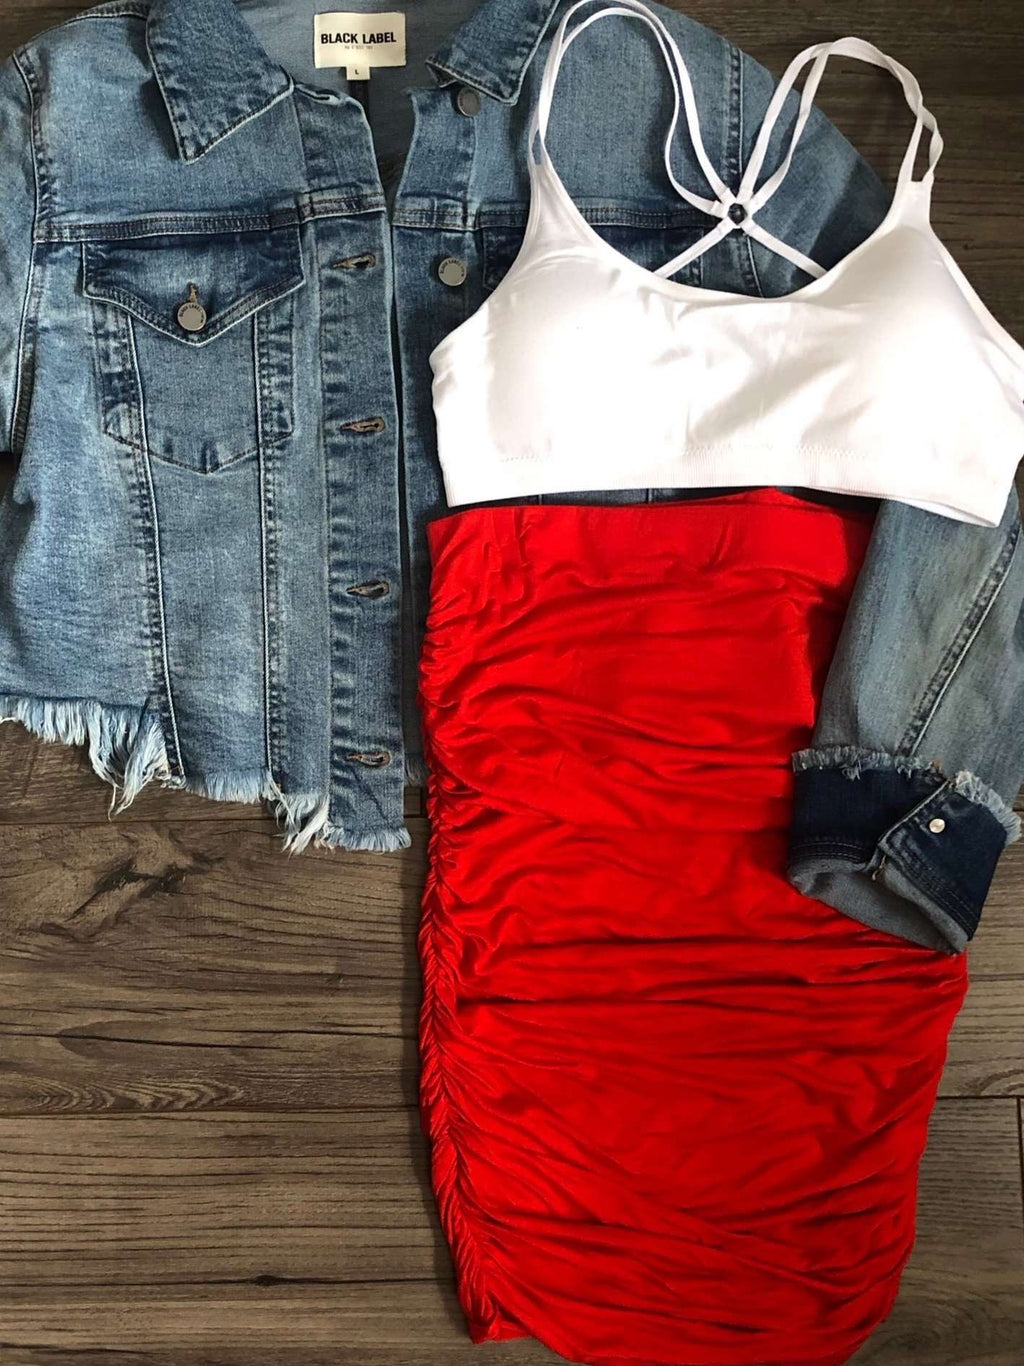 Red Jersey Skirt Boutique Clothing Style with Side Ruching and White Sports Bra with Denim Jacket